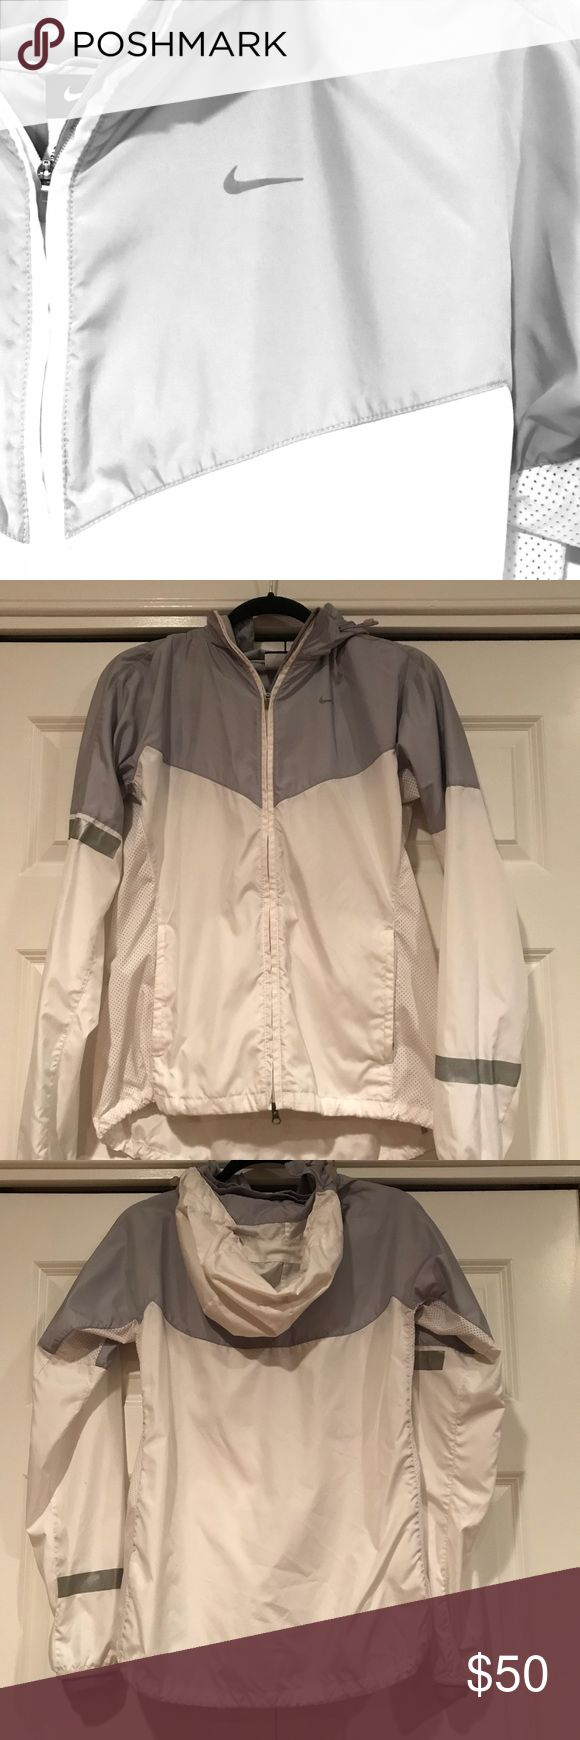 Nike Running Jacket Women's Nike running jacket. Two toned - gray/white Nike Jackets & Coats http://feedproxy.google.com/fashionshoes1